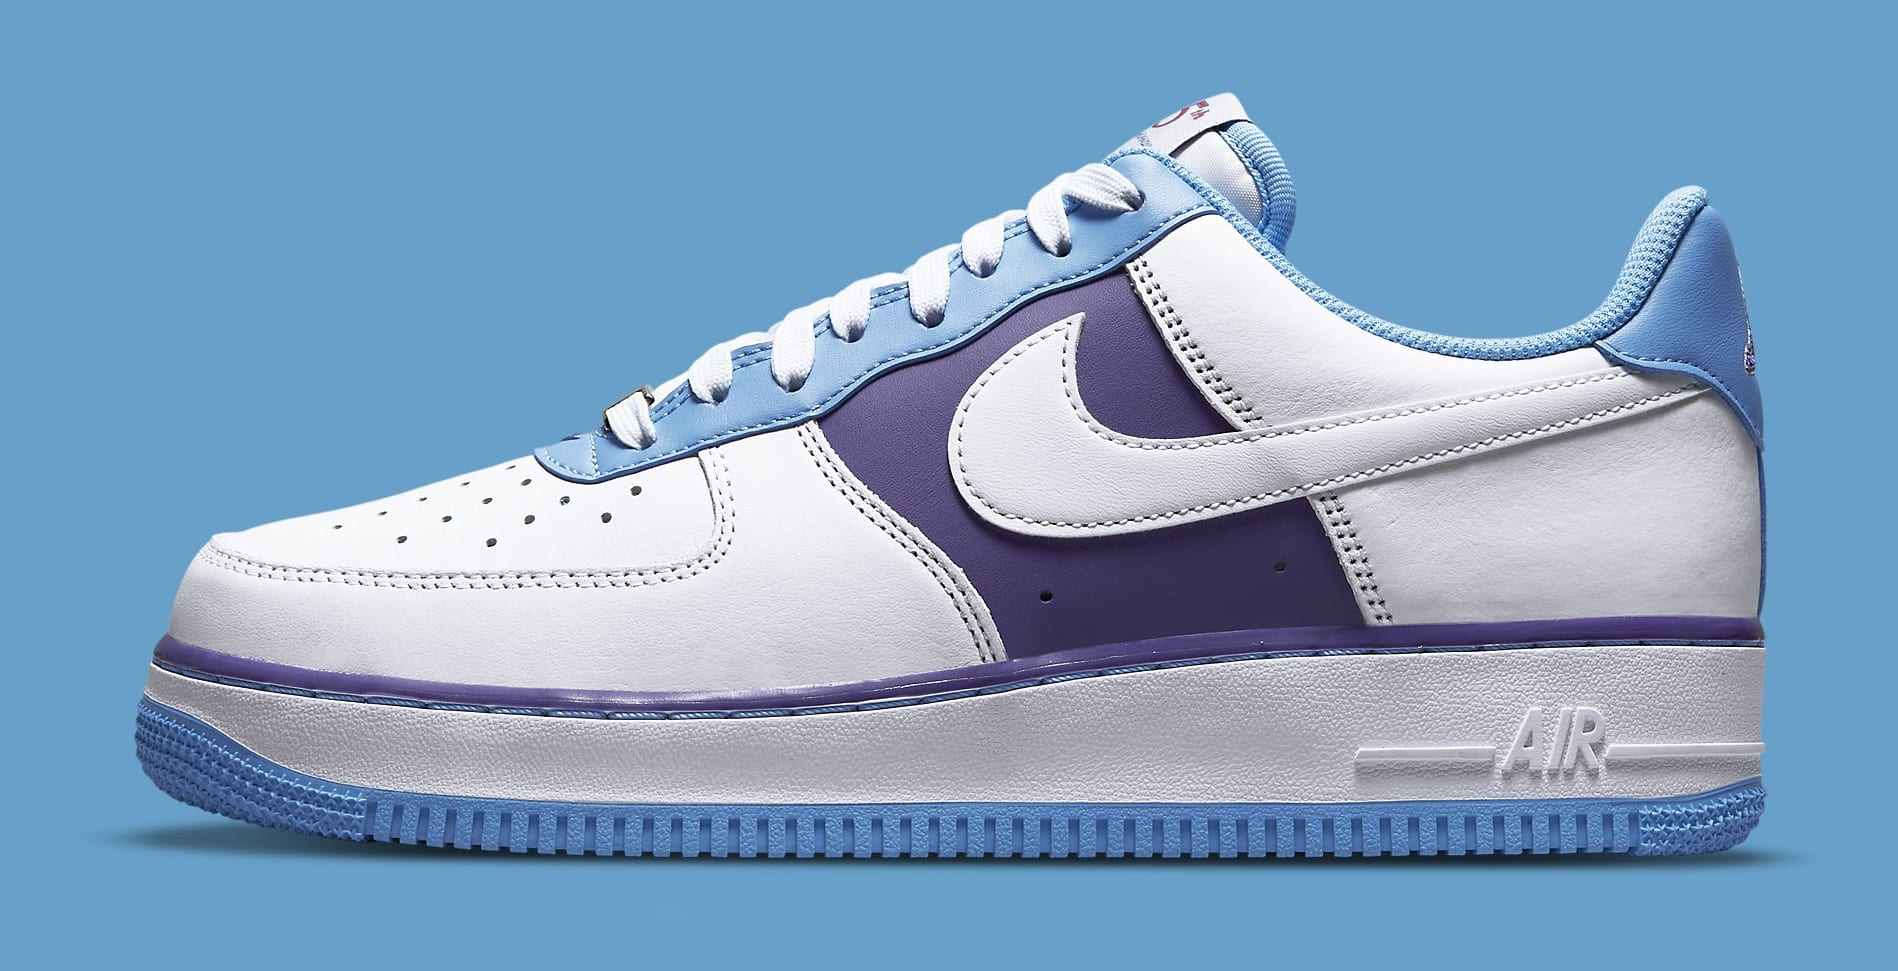 Nike Air Force 1 Low 'Lakers' NBA 75th Anniversary DC8874-101 Lateral